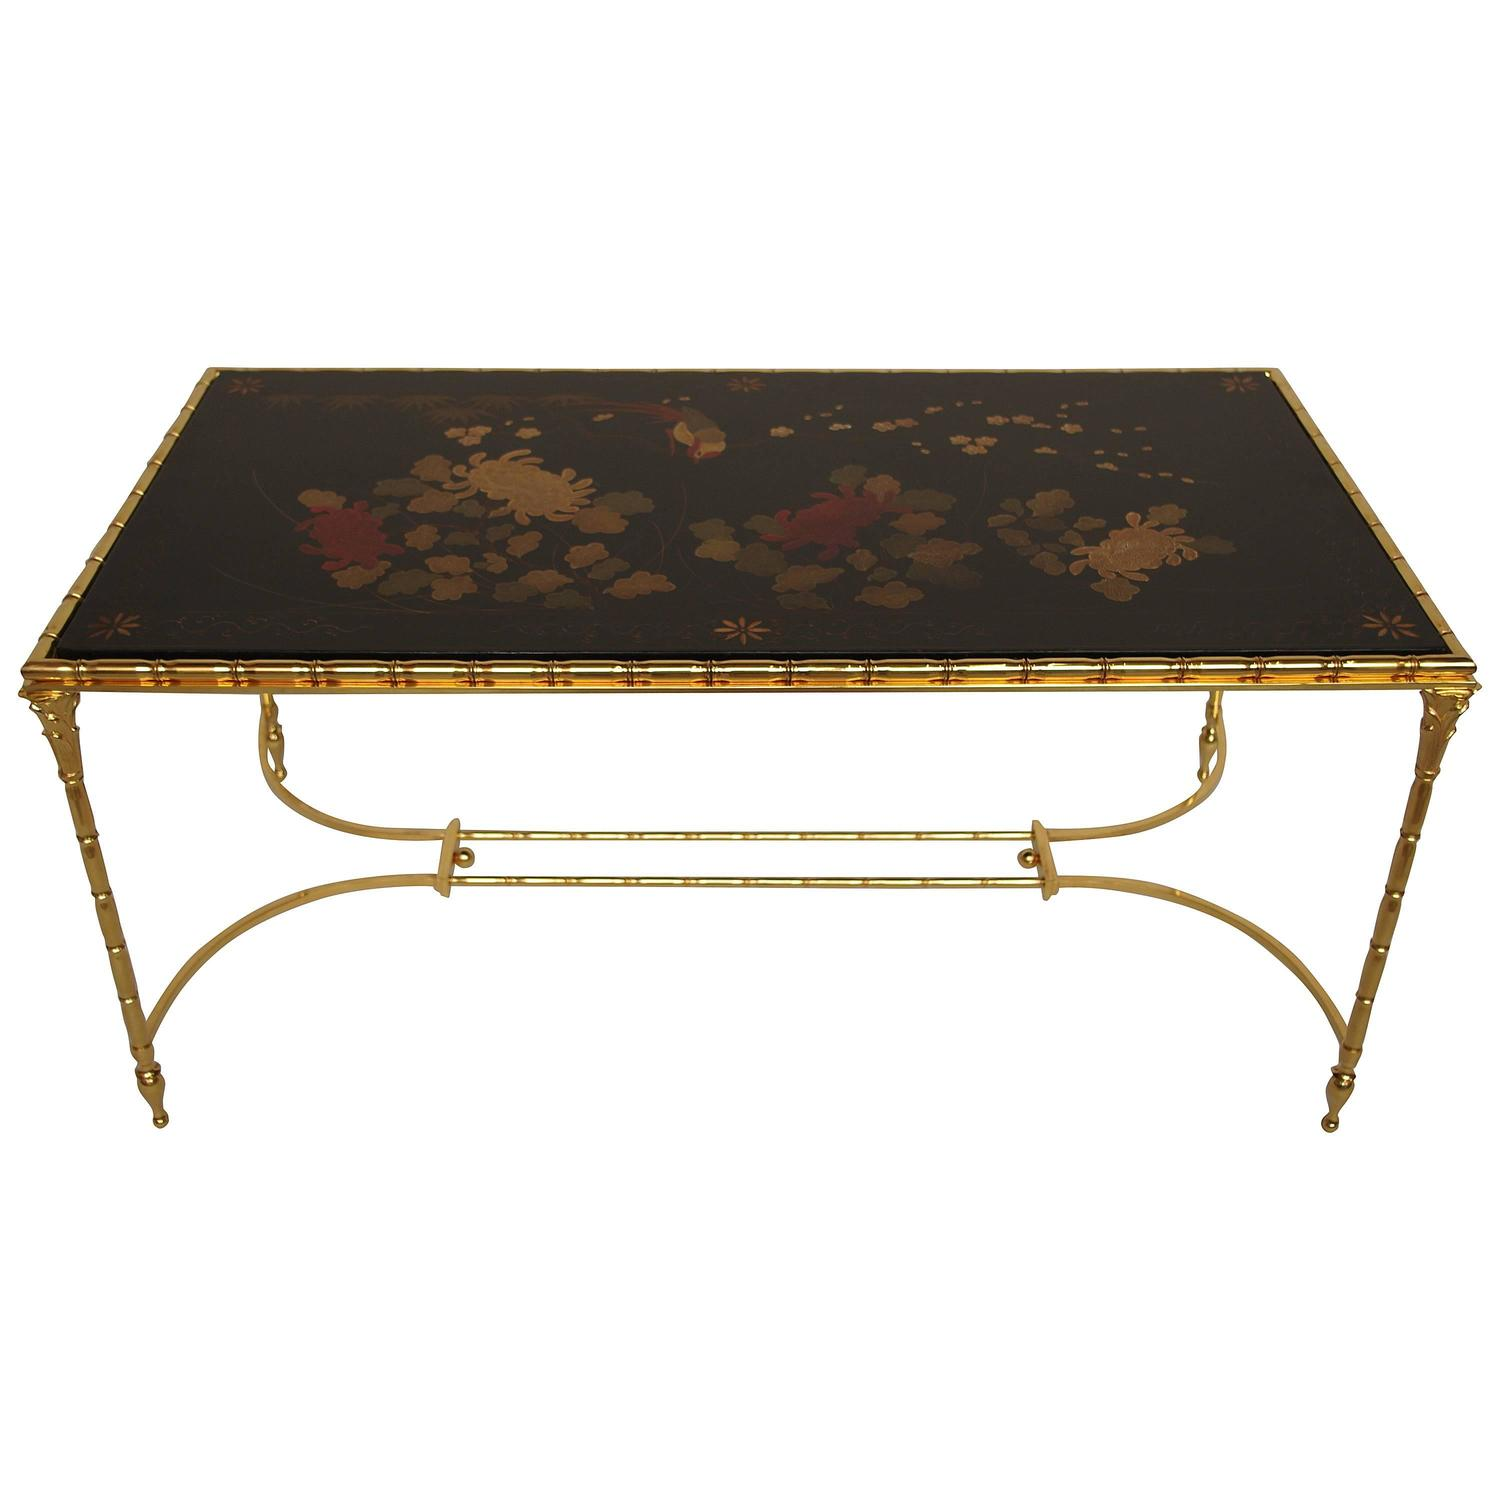 Bamboo Style Black Lacquer Top Chinese Style Coffee Table For Sale At 1stdibs